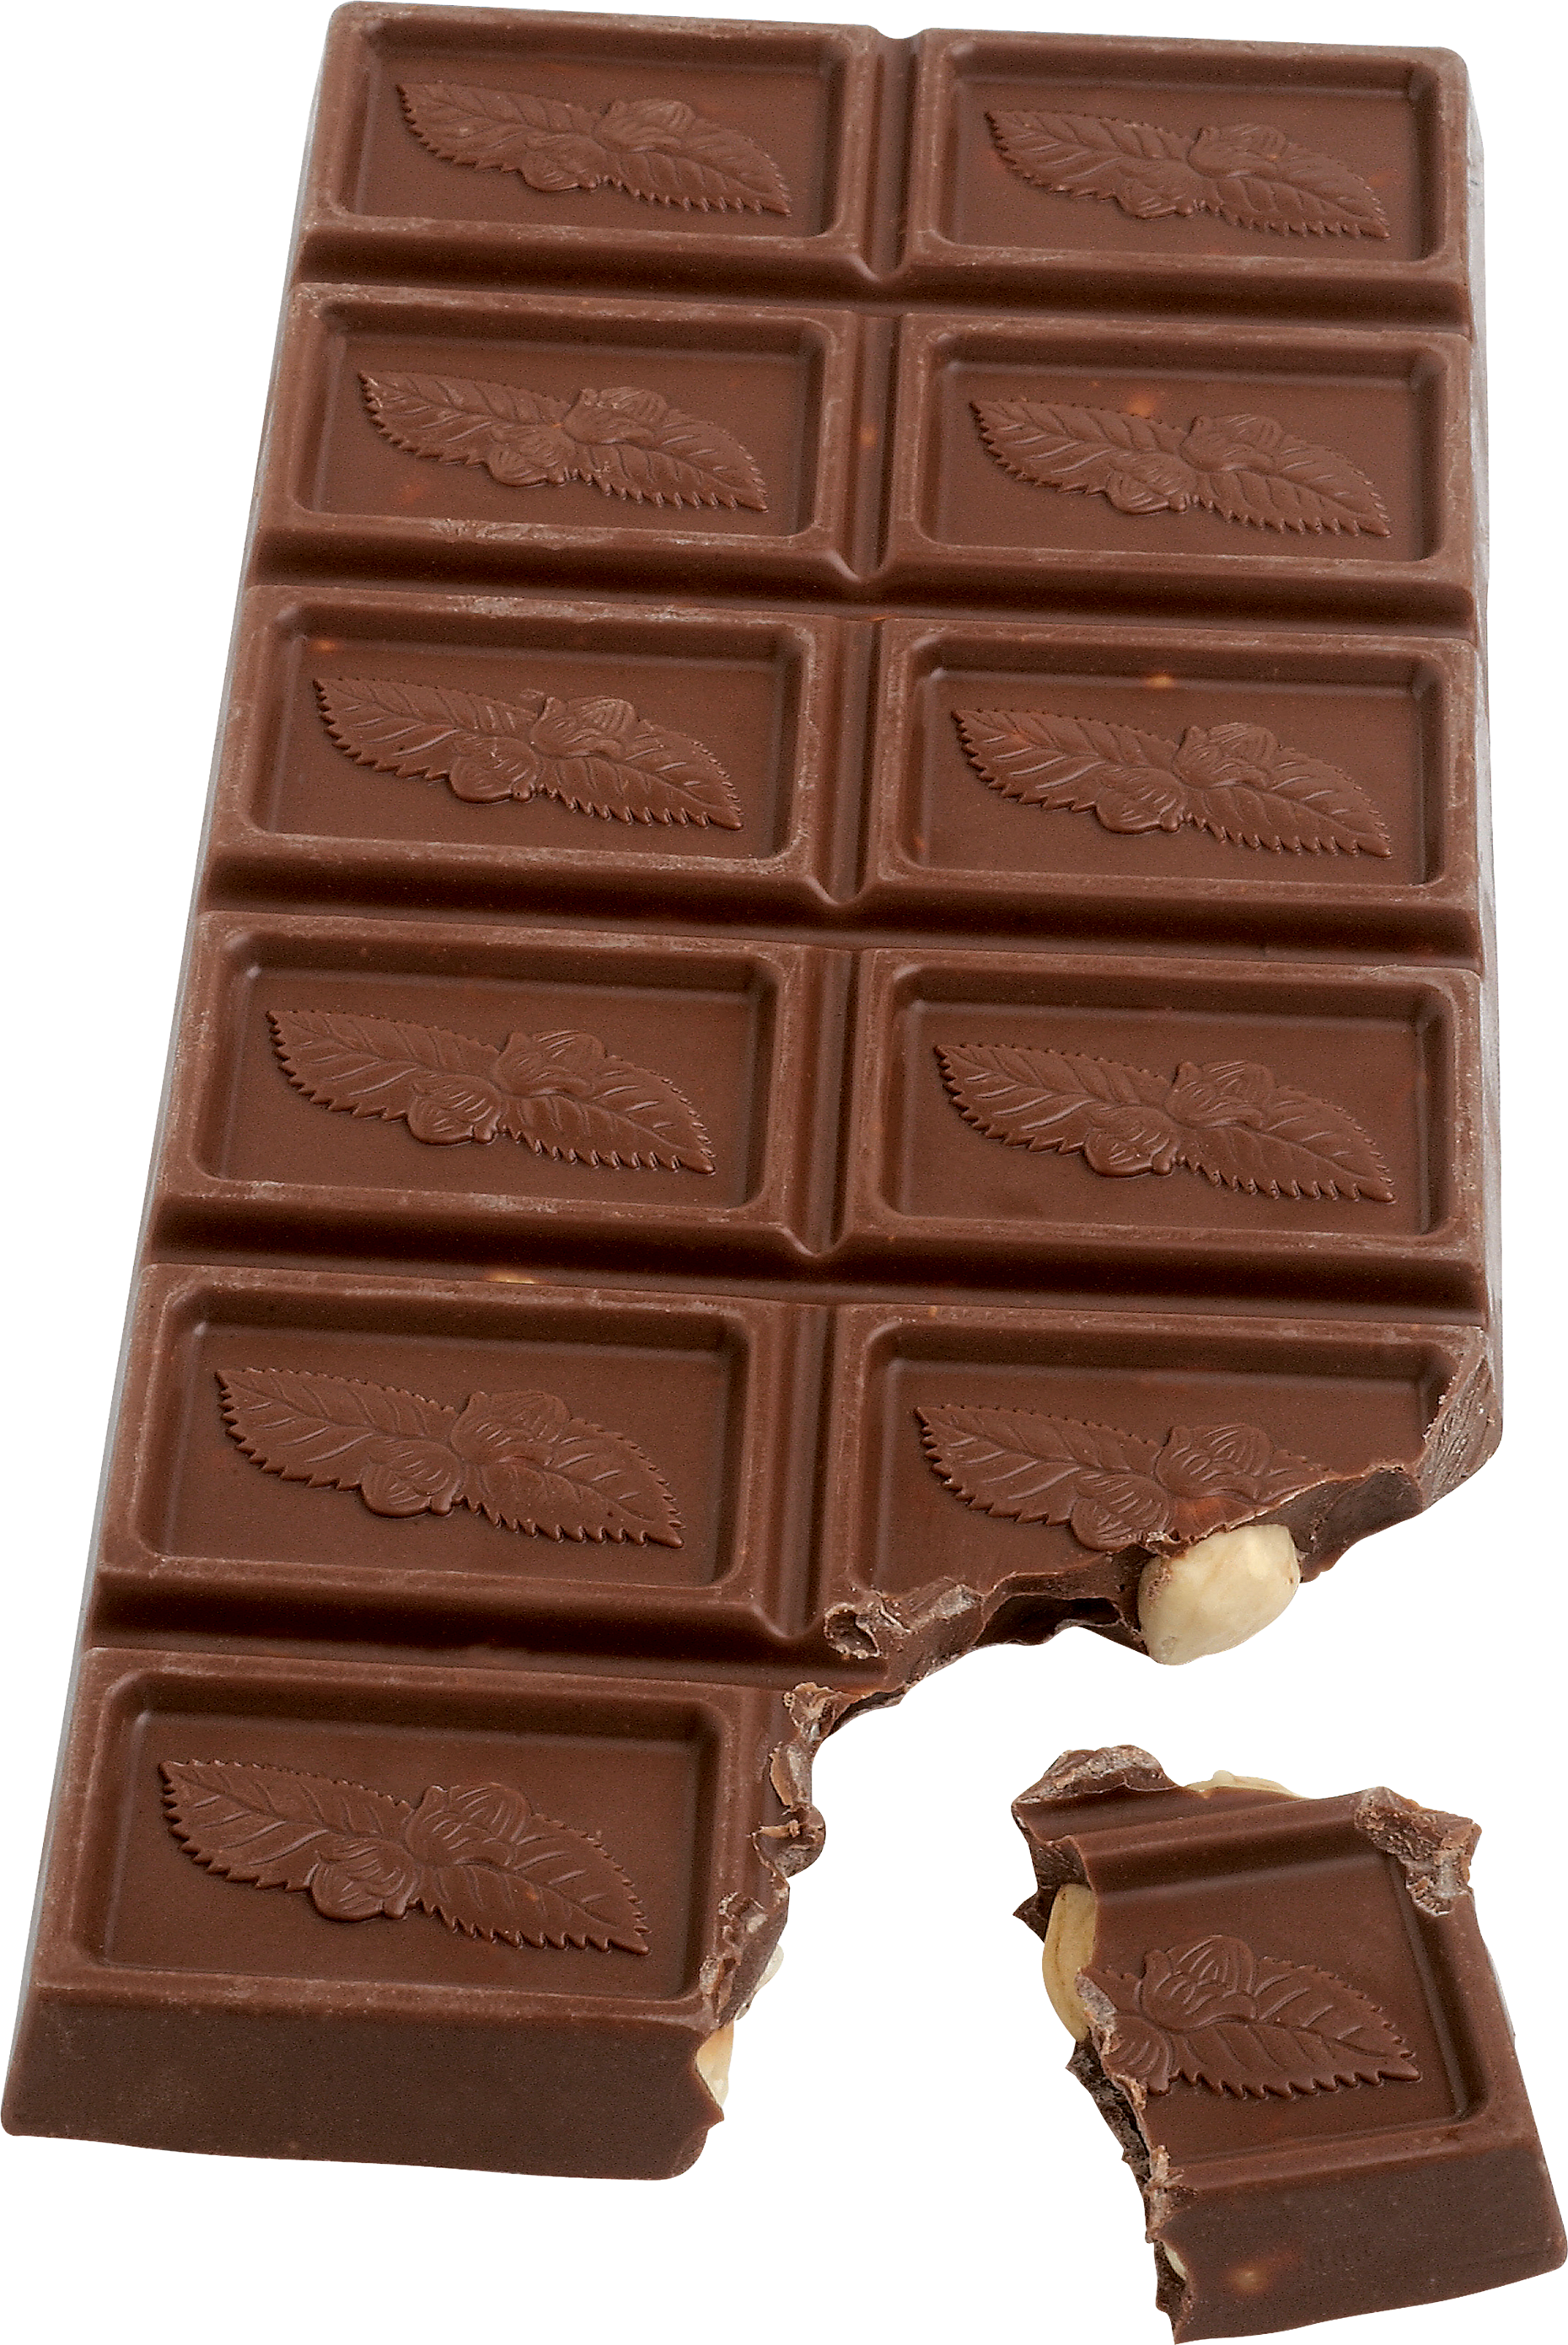 Bar png image . Chocolate clipart clear background